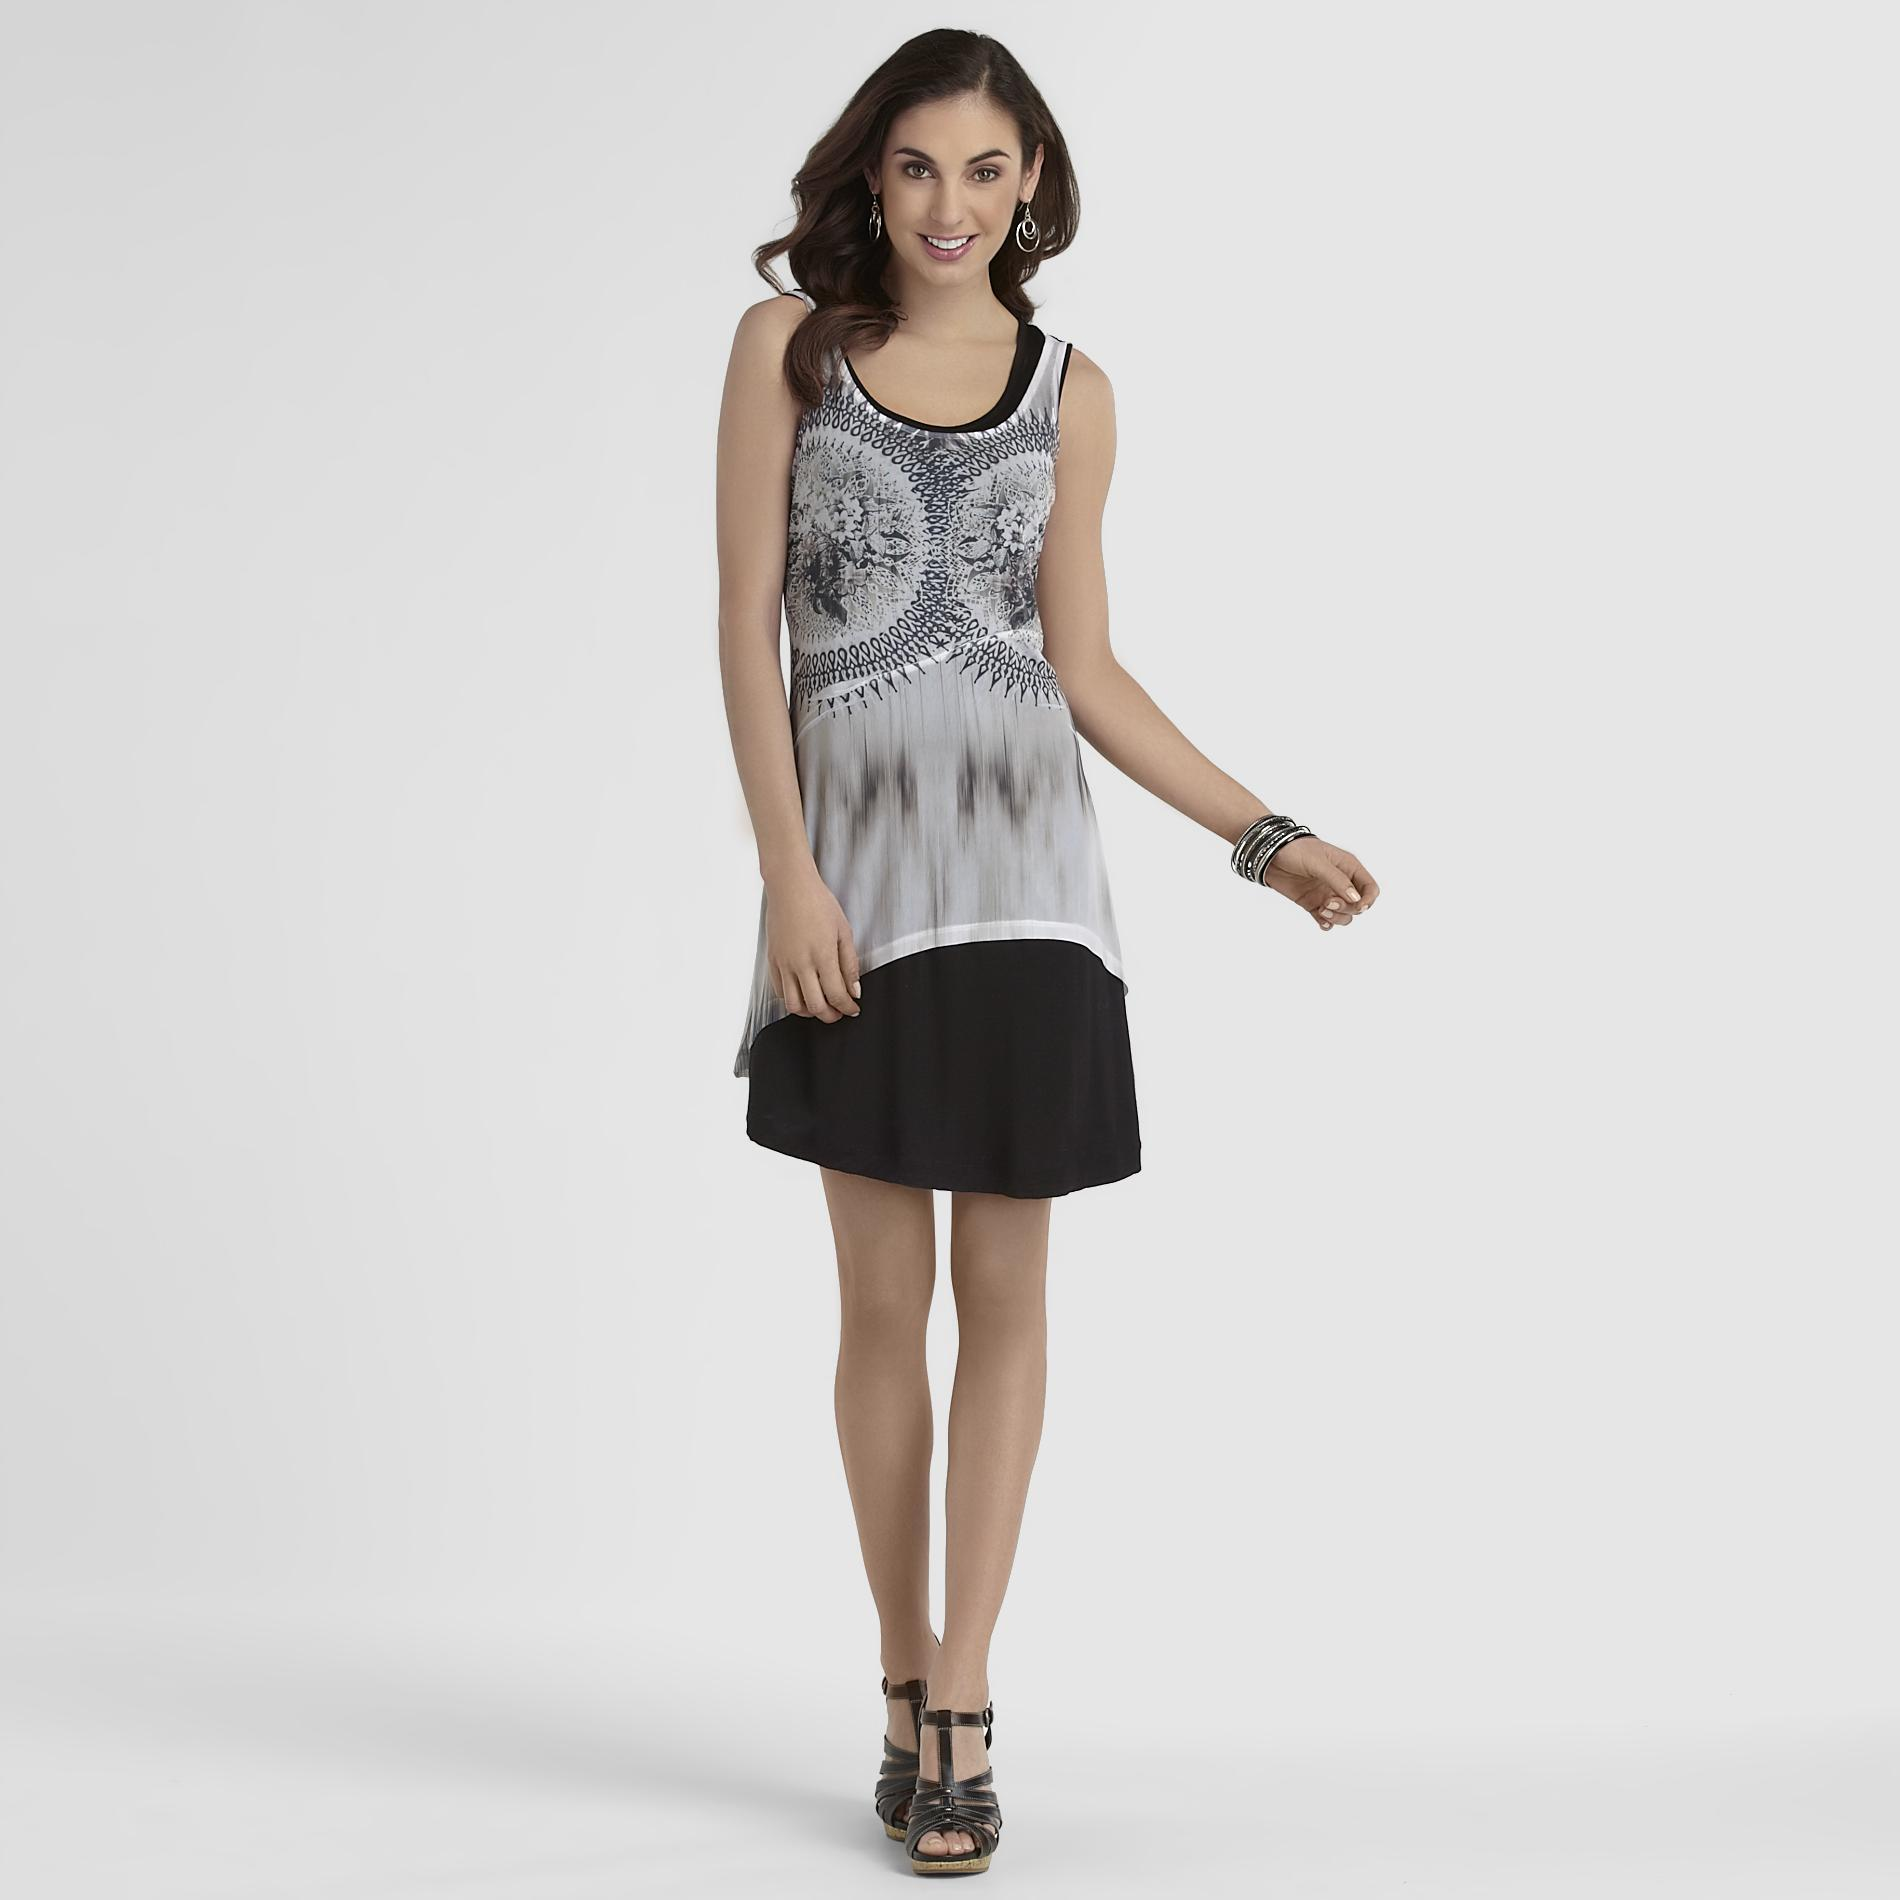 Women's Layered Sublimation Print Dress at Sears.com